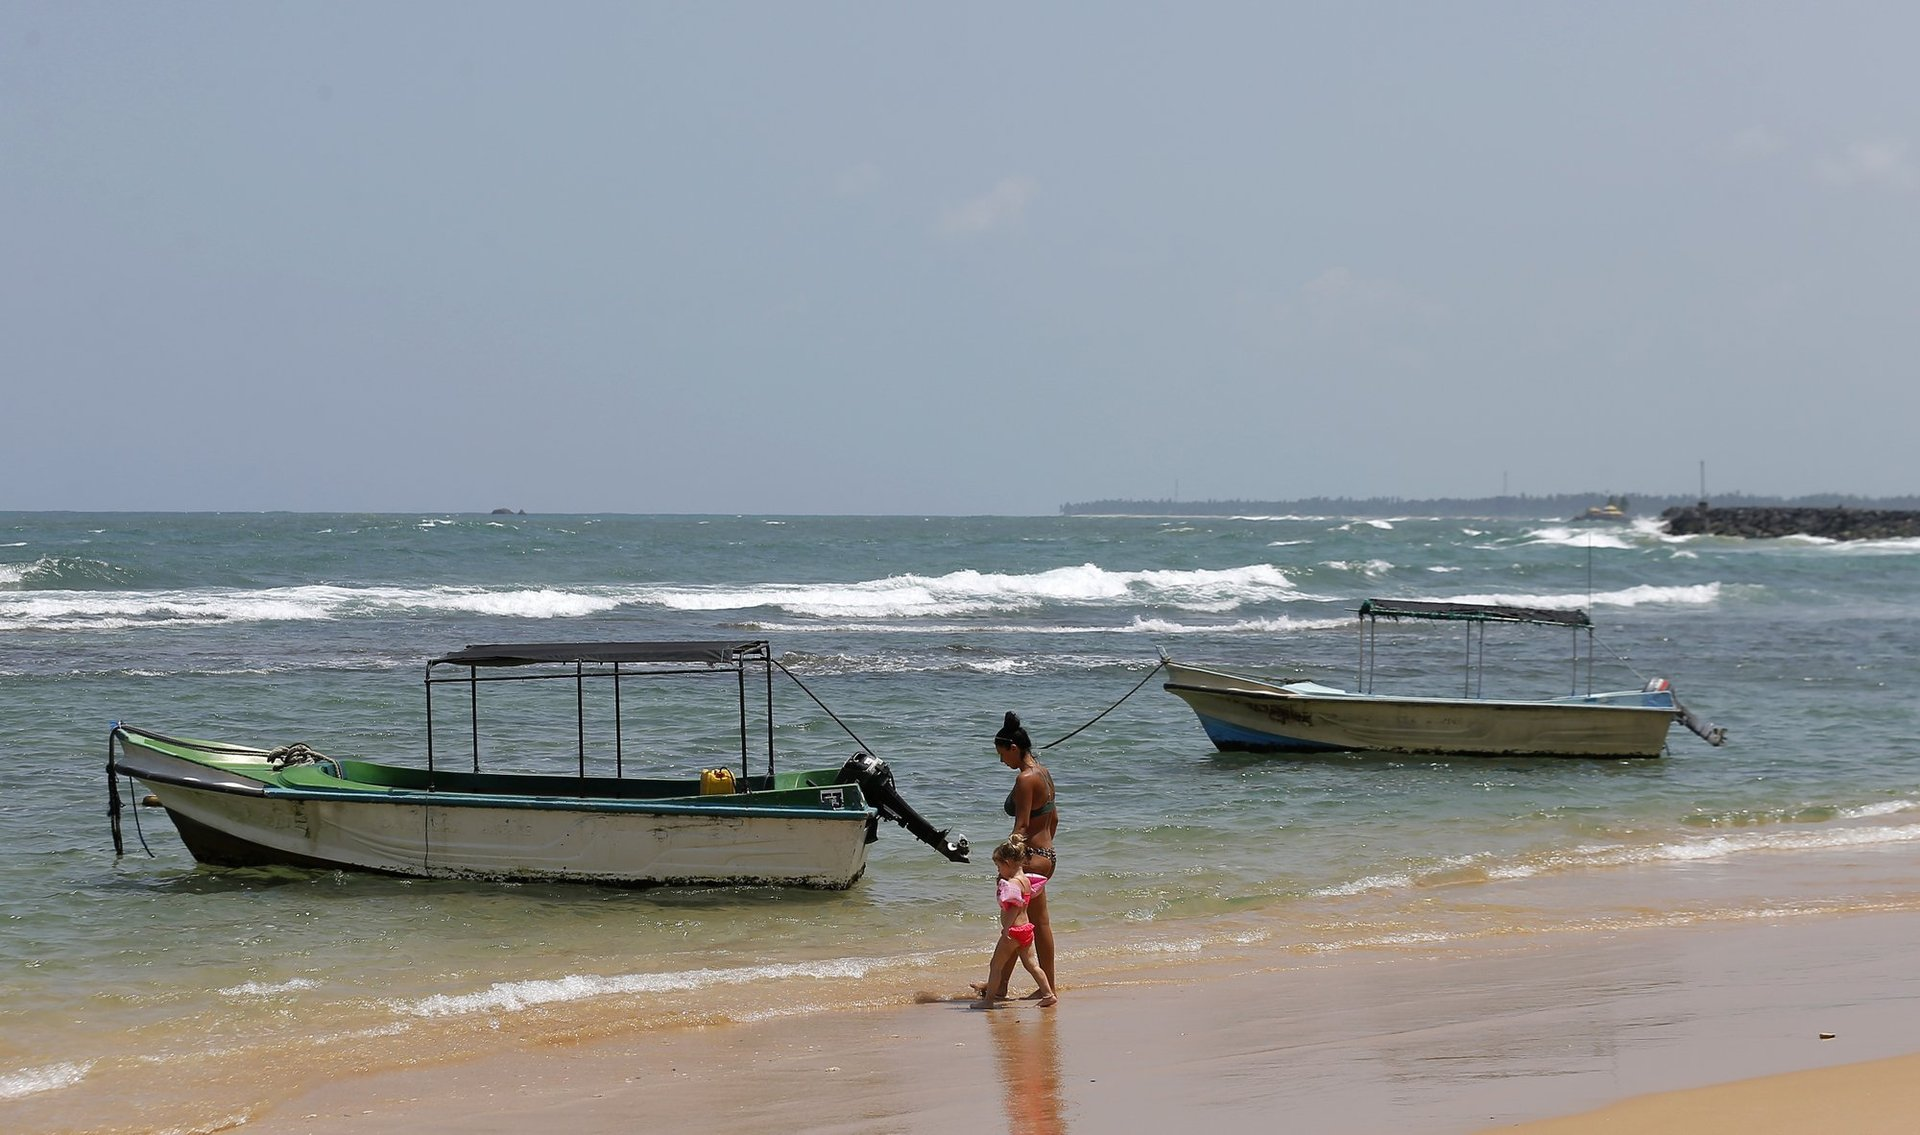 Sri Lanka holiday over as beaches, hotels empty a month after Easter bombings